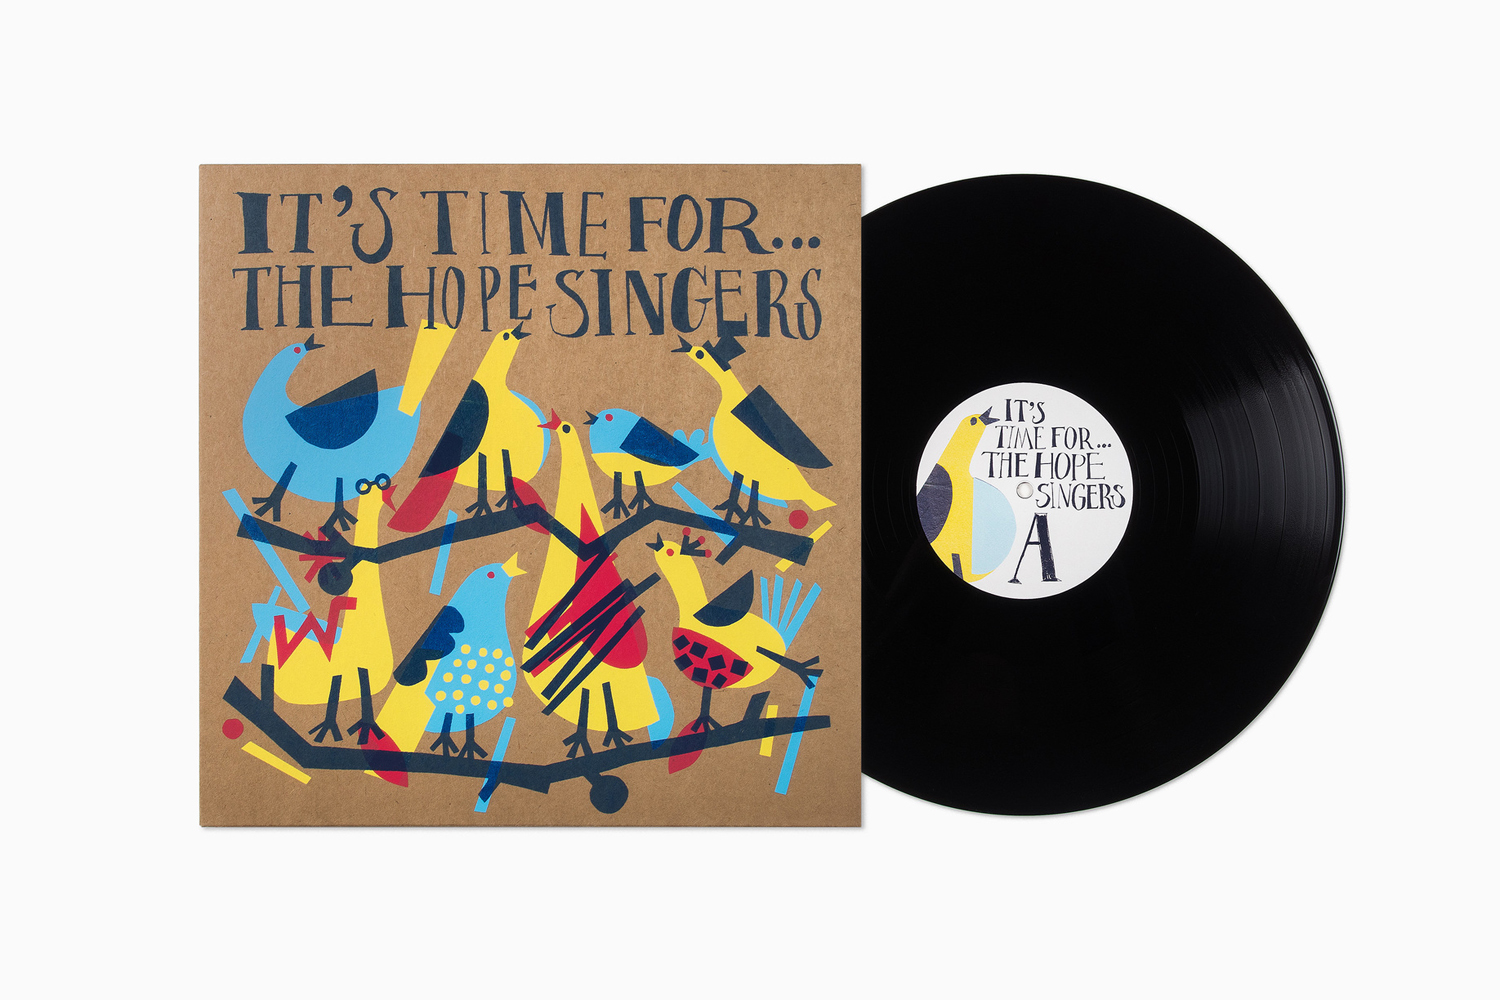 Limited edition illustrated record sleeve for The Hope Singers by Bedow